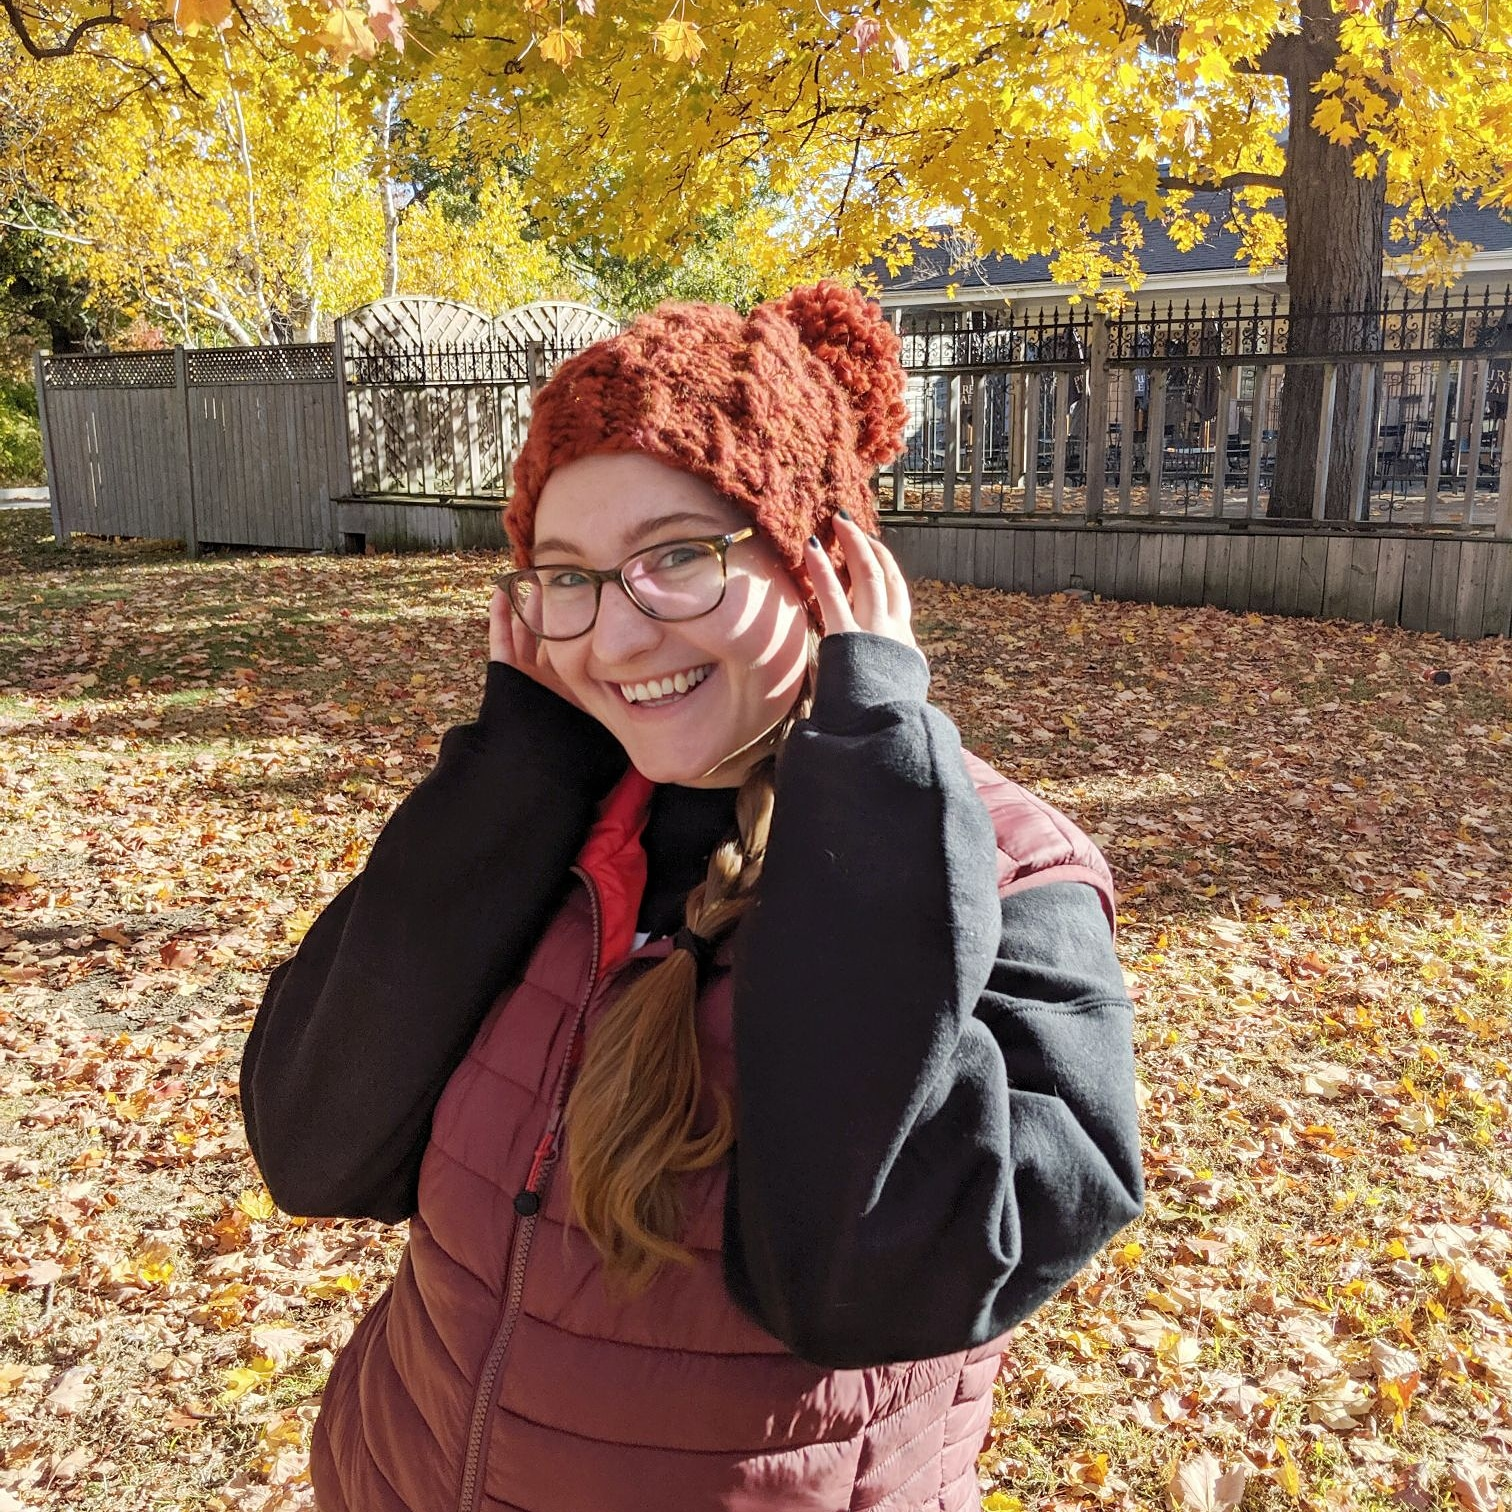 Young white woman wearing an orange knit hat poses in front of trees with yellow leaves